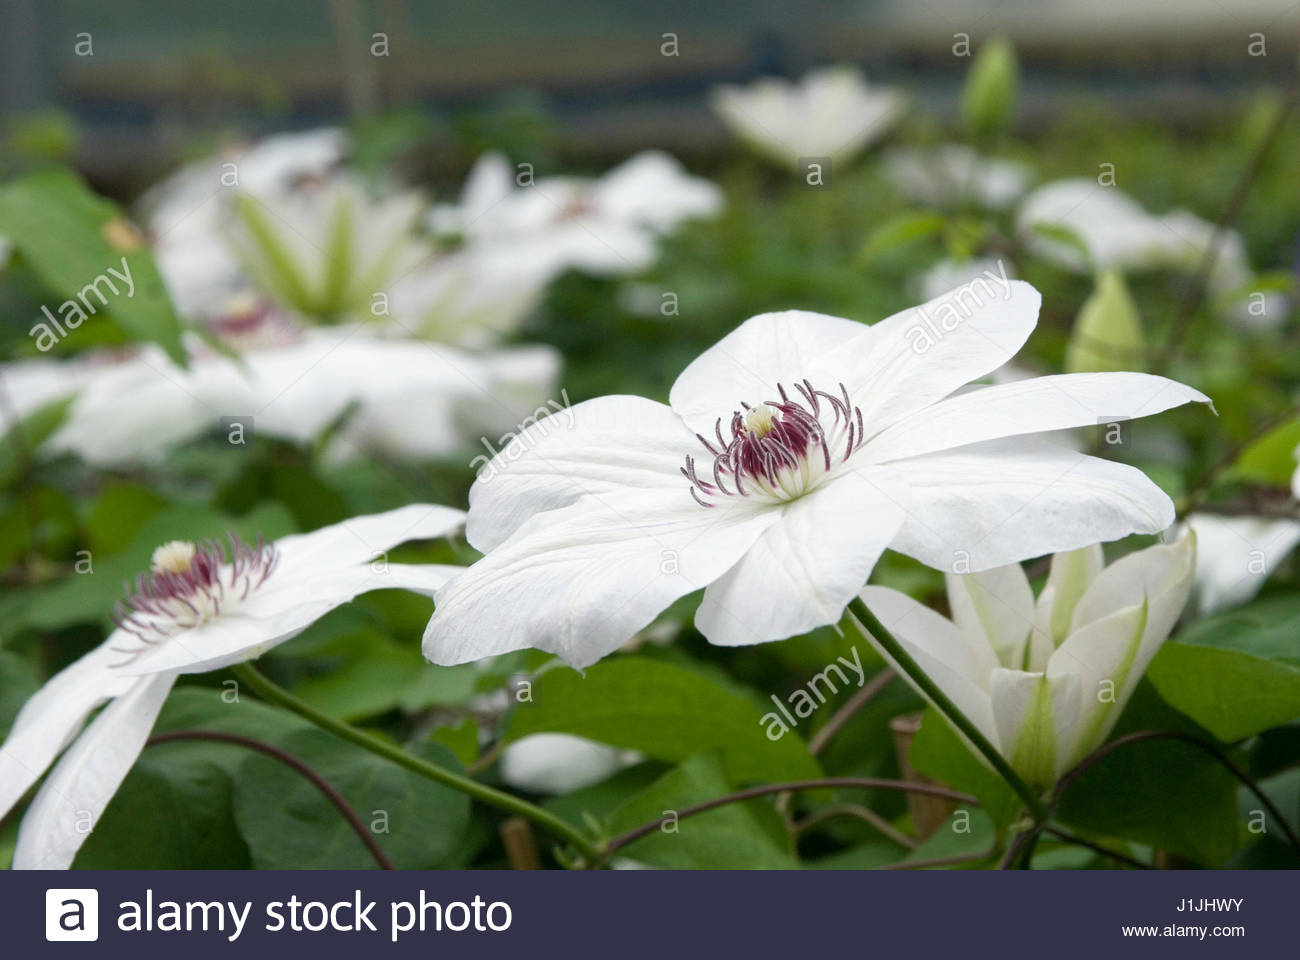 clematis miss bateman stock photos clematis miss bateman stock images alamy. Black Bedroom Furniture Sets. Home Design Ideas